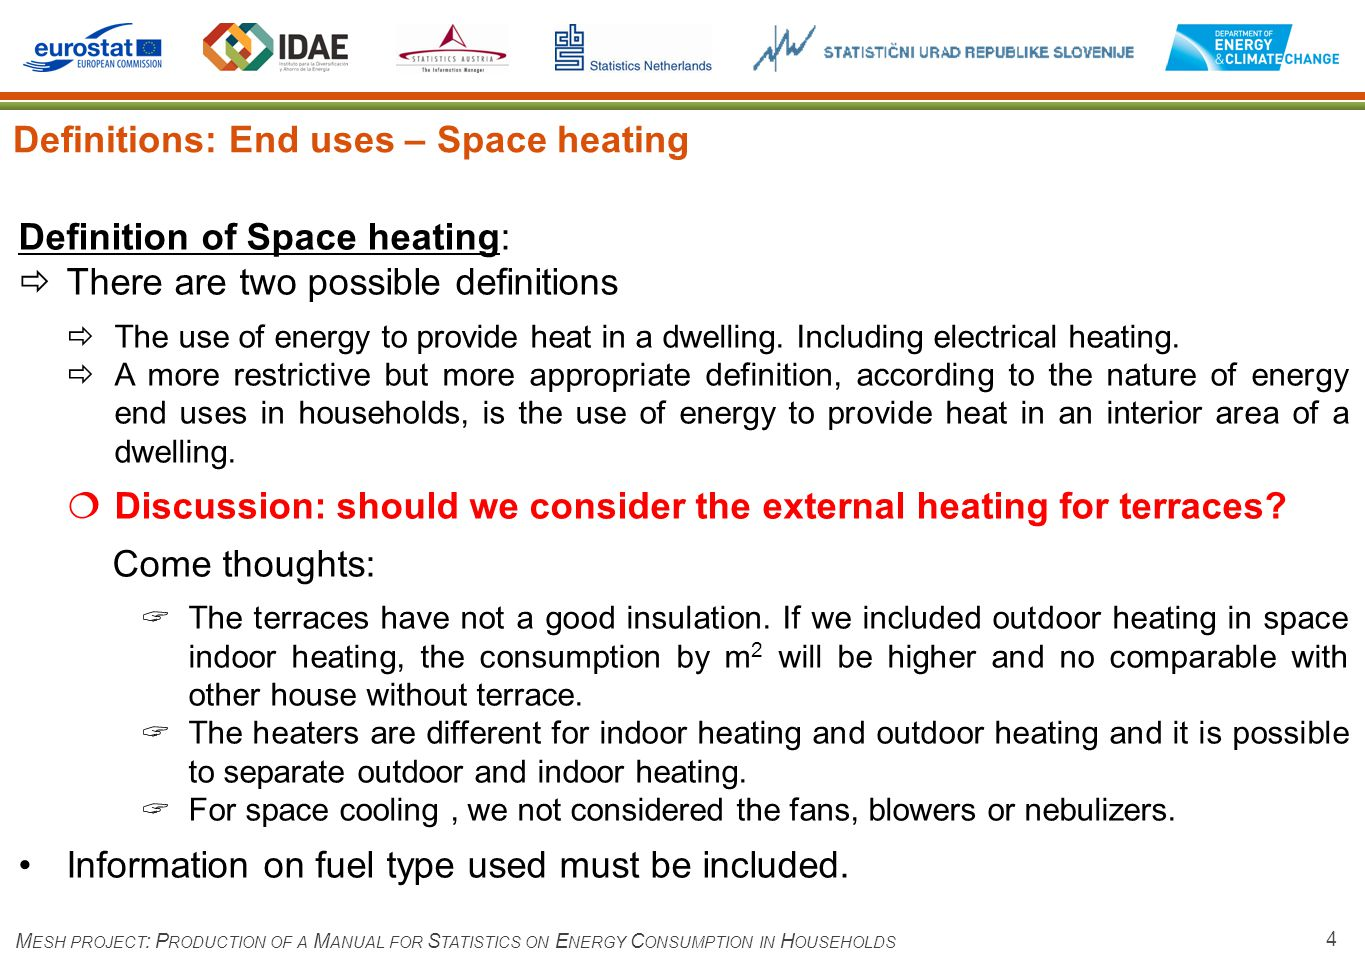 4 Definitions: End uses – Space heating M ESH PROJECT : P RODUCTION OF A M ANUAL FOR S TATISTICS ON E NERGY C ONSUMPTION IN H OUSEHOLDS Definition of Space heating: There are two possible definitions The use of energy to provide heat in a dwelling.